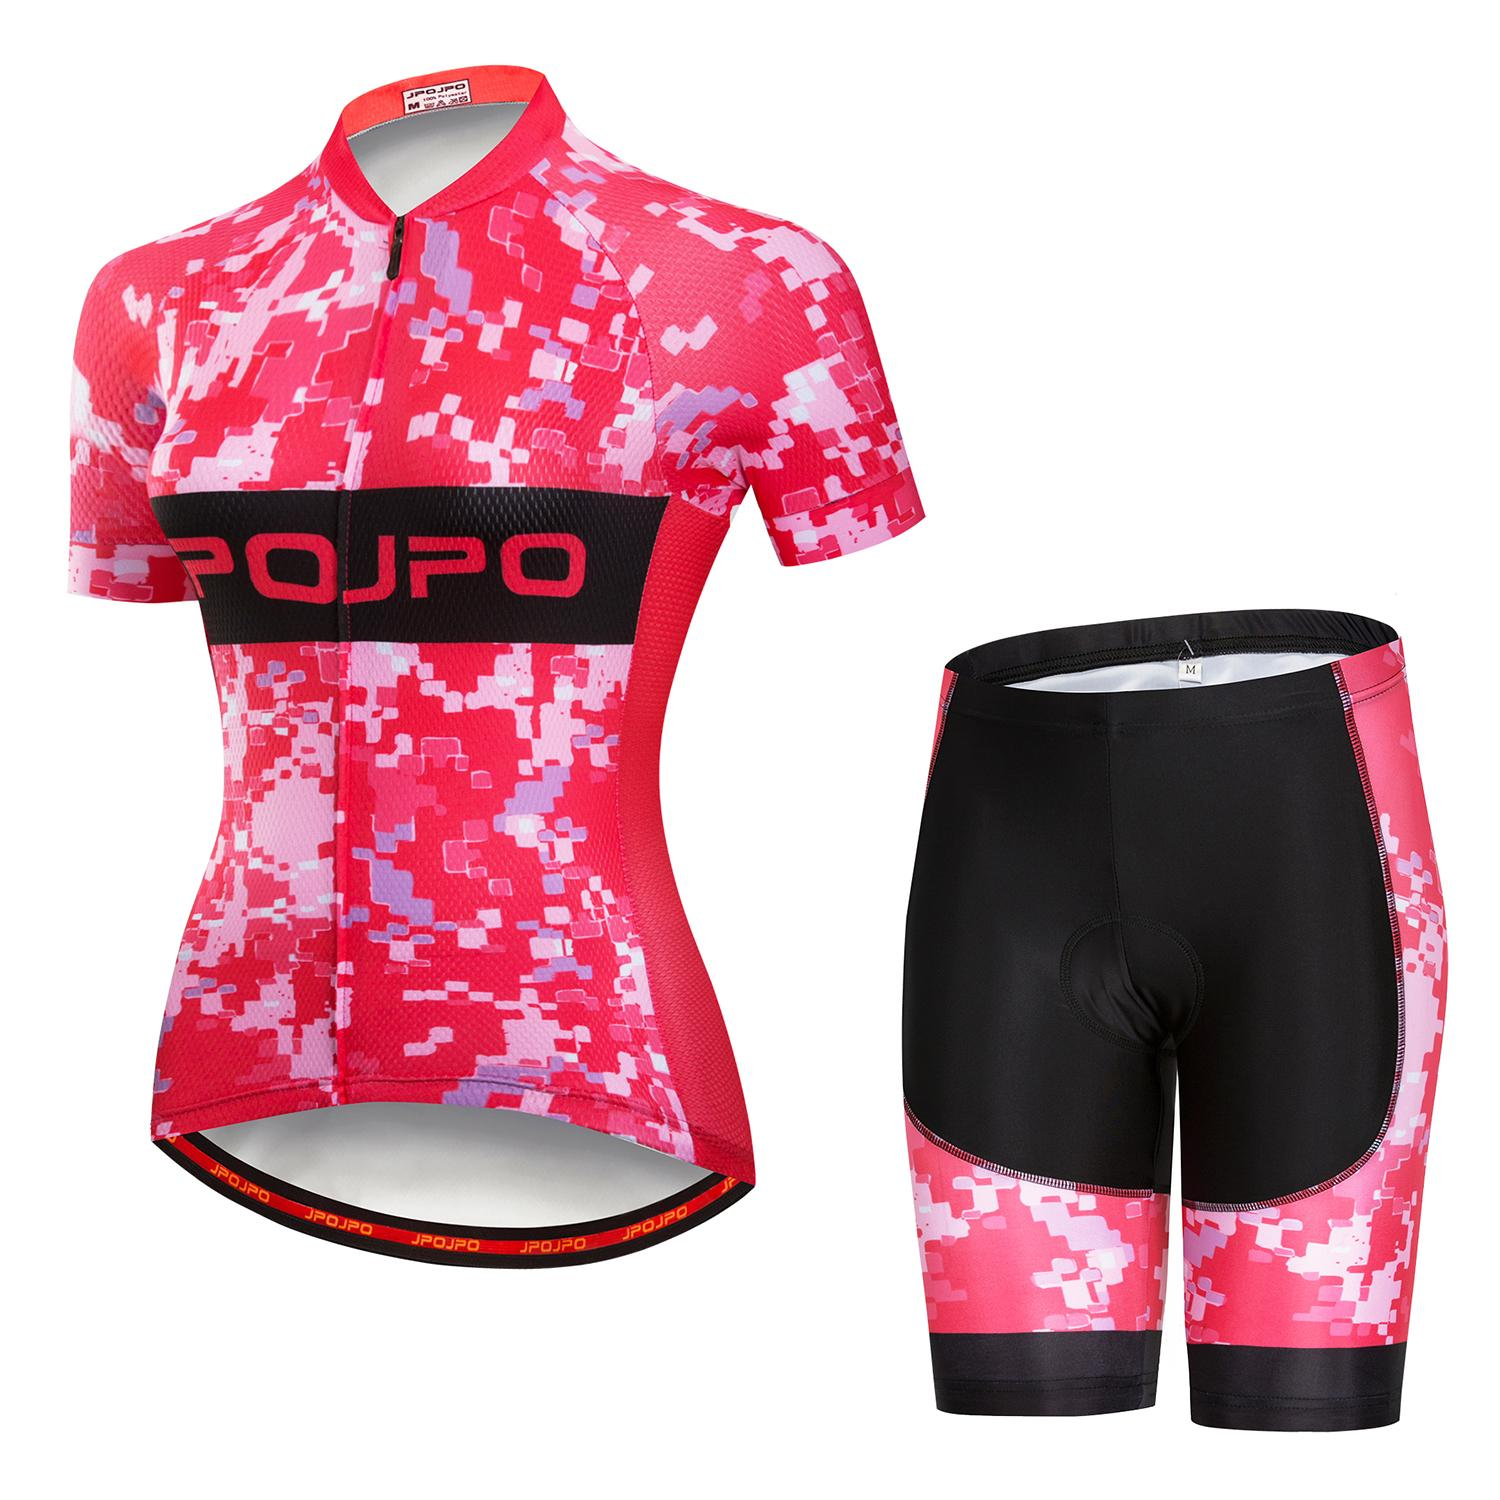 JPOJPO Pink Women Summer quick dry Cycling Jersey Set MTB bicycle Jersey Sets Ropa Ciclismo short sleeve bike Clothes